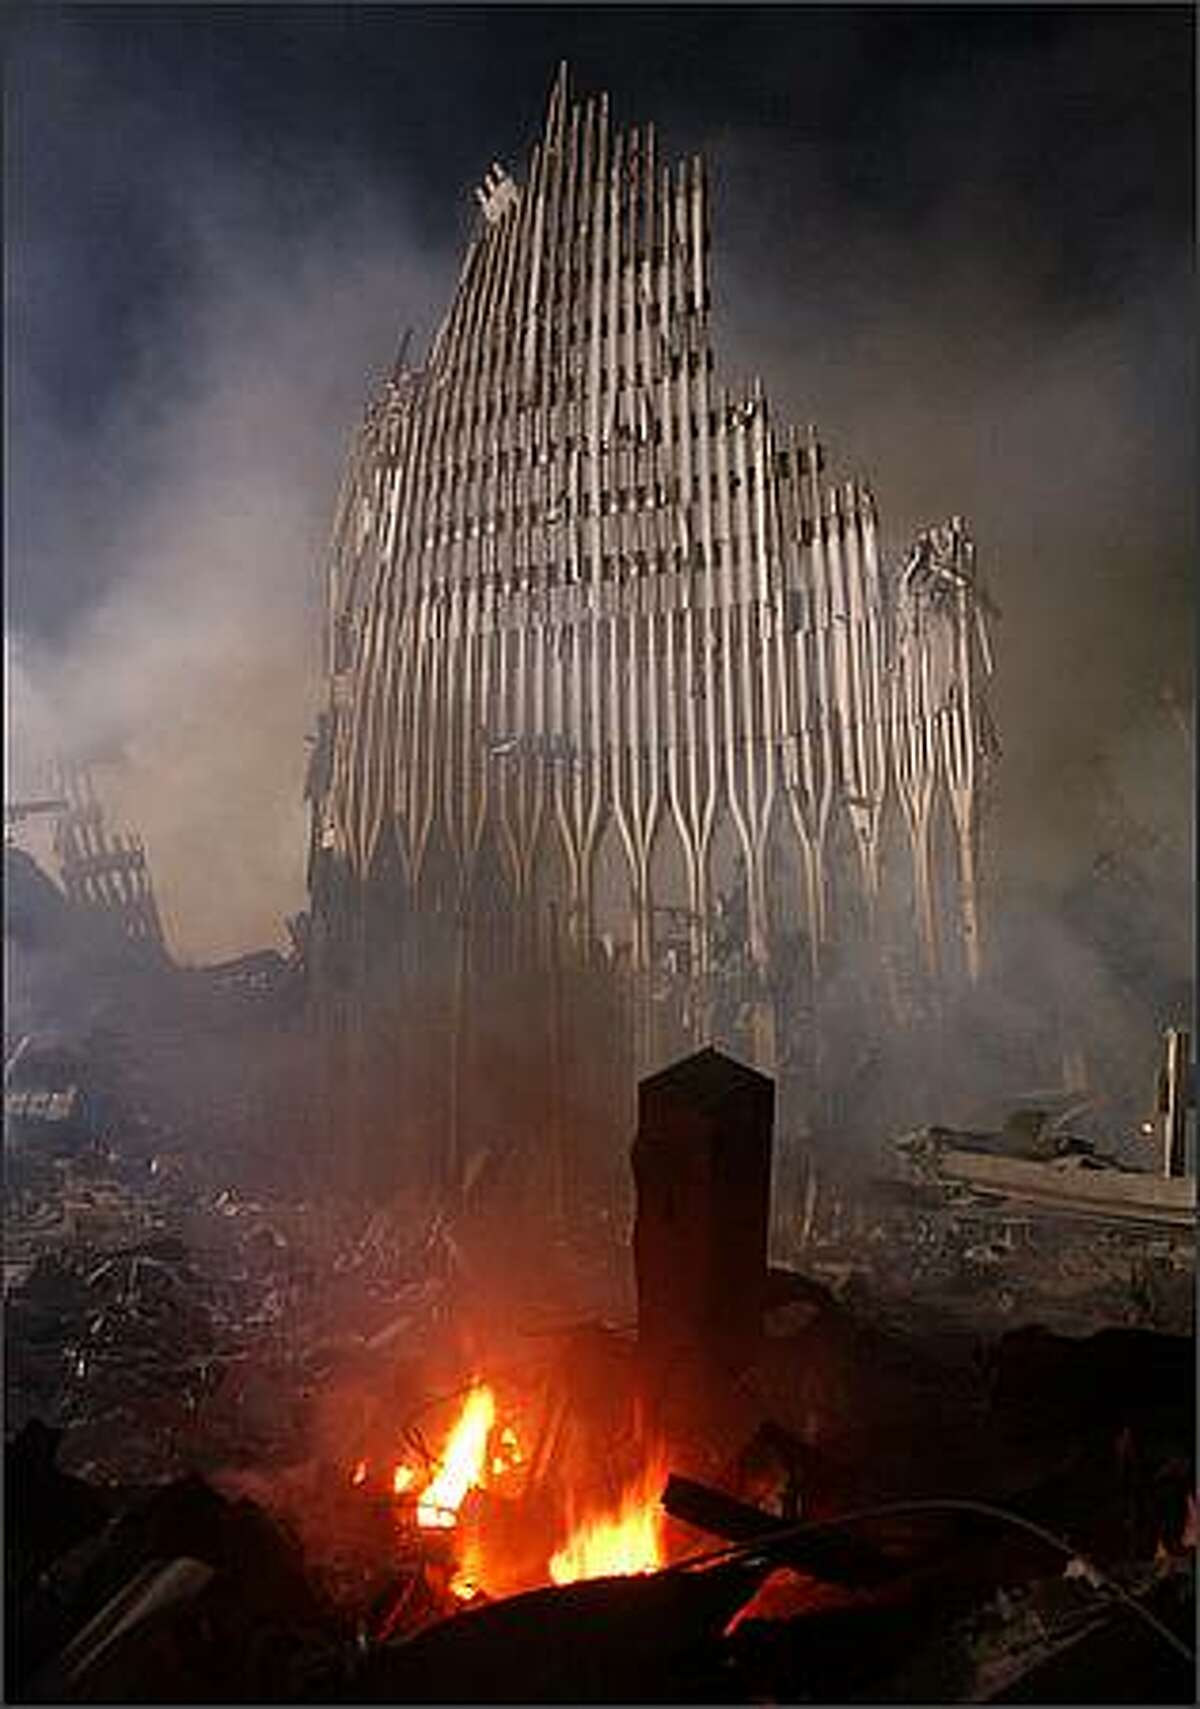 Rubble burns at the remains of the destroyed World Trade Center towers September 12, 2001 in New York City. (Photo by Spencer Platt/Getty Images)